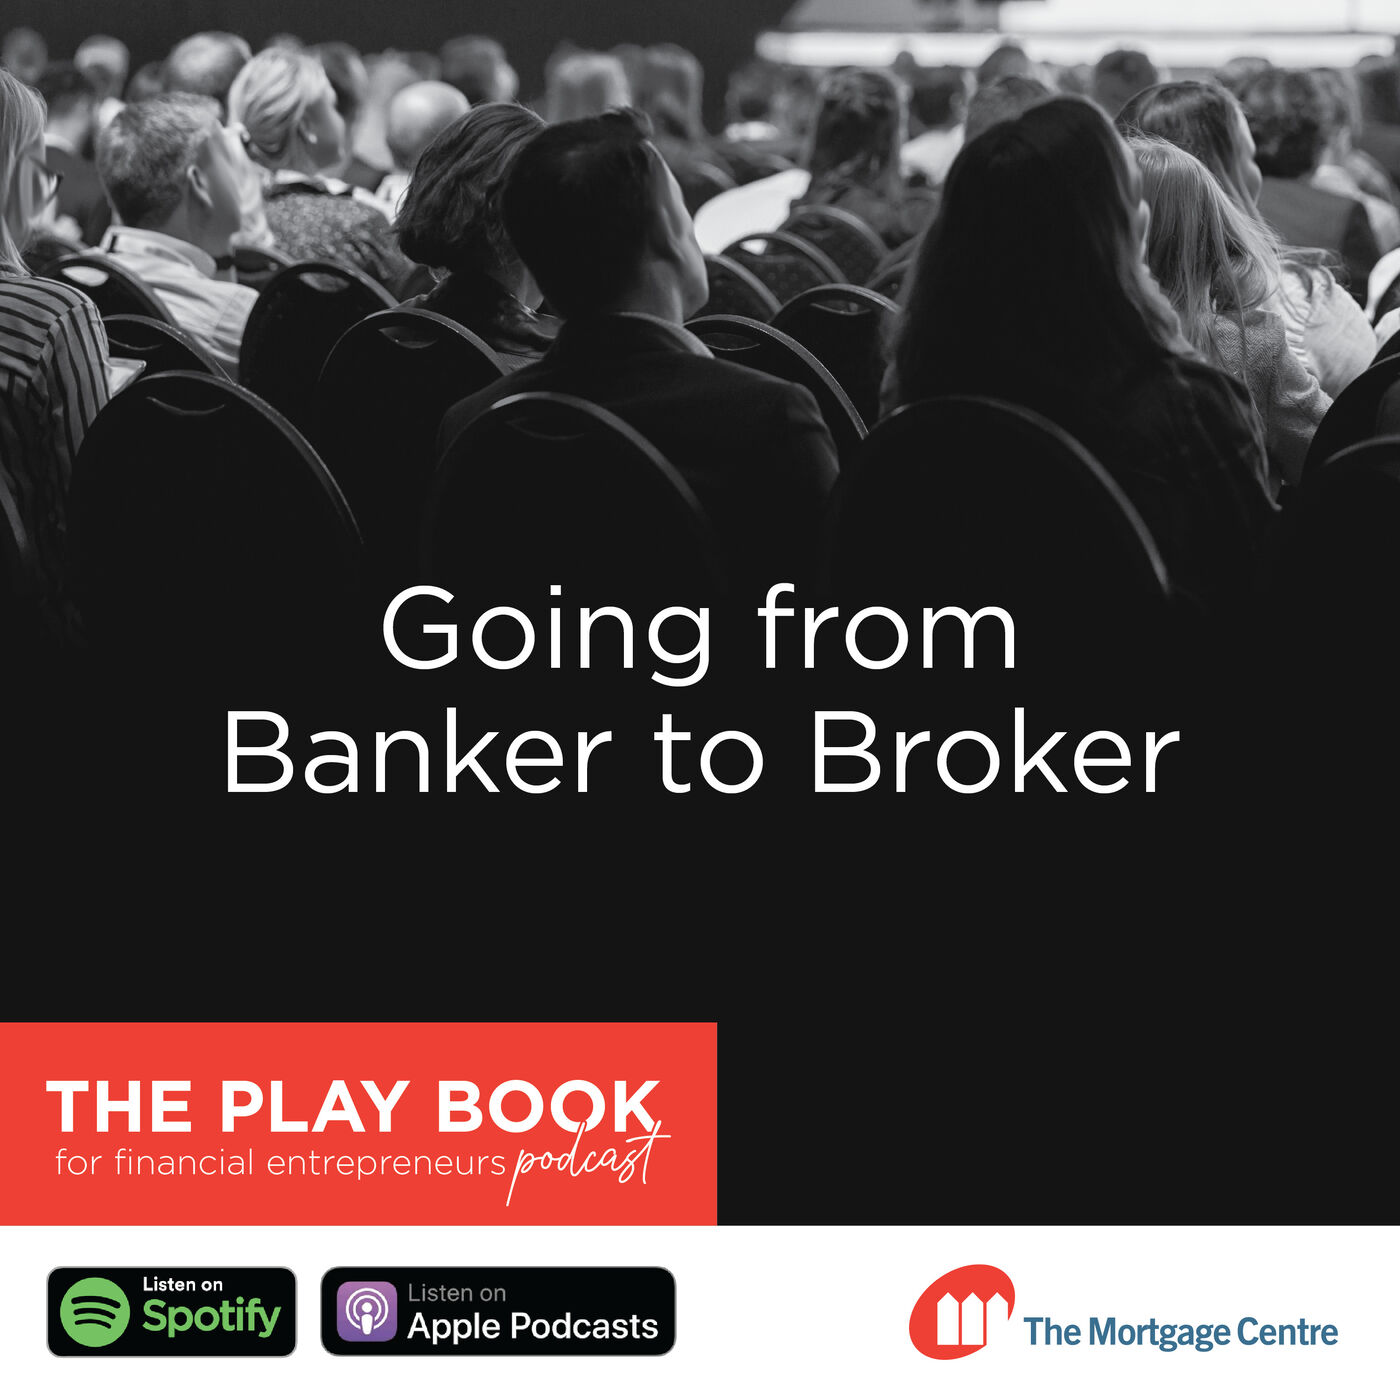 The Mindset of going from Banker to Broker